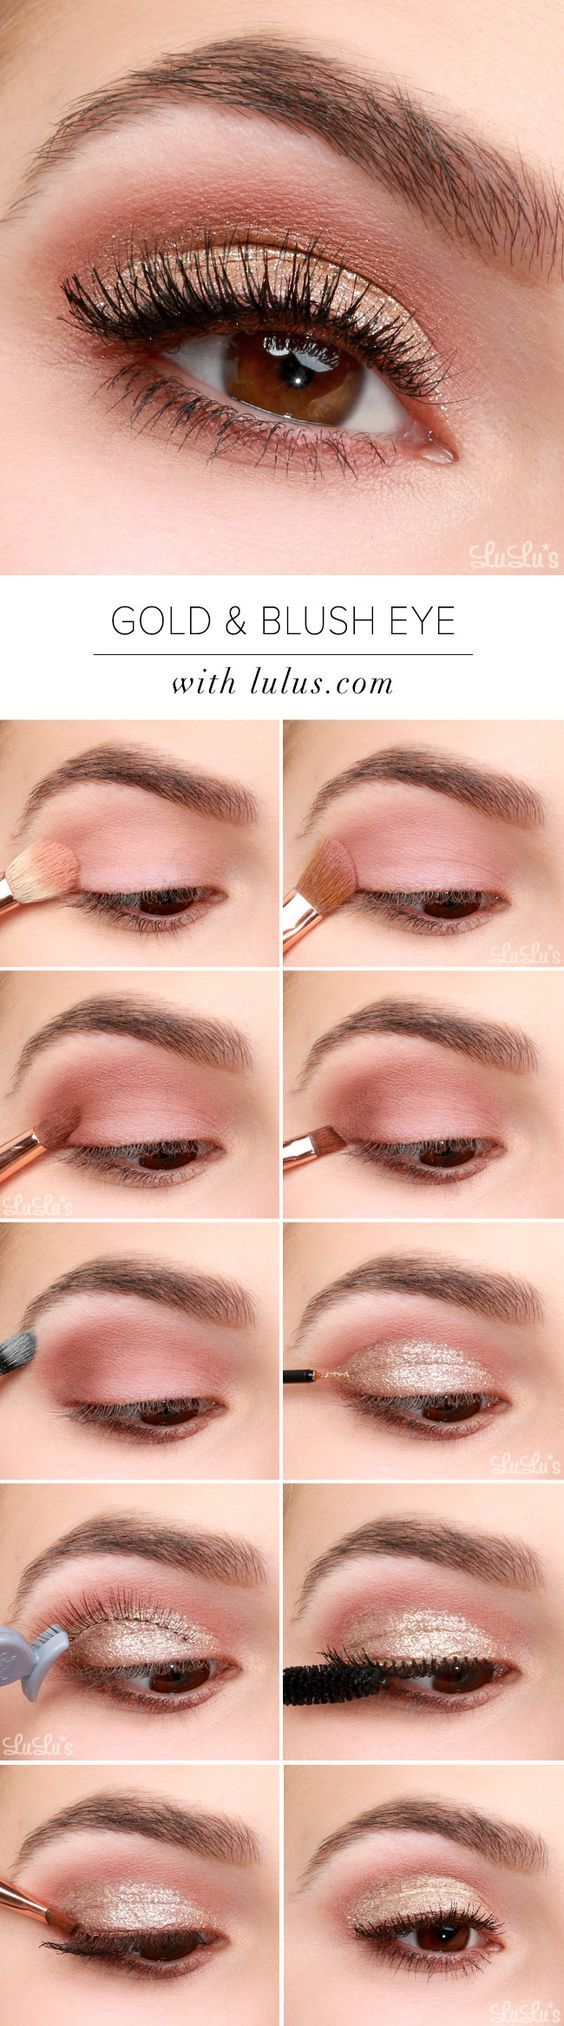 Lulus how to gold and blush valentines day eye makeup tutorial lulus how to gold and blush valentines day eye makeup tutorial at baditri Choice Image